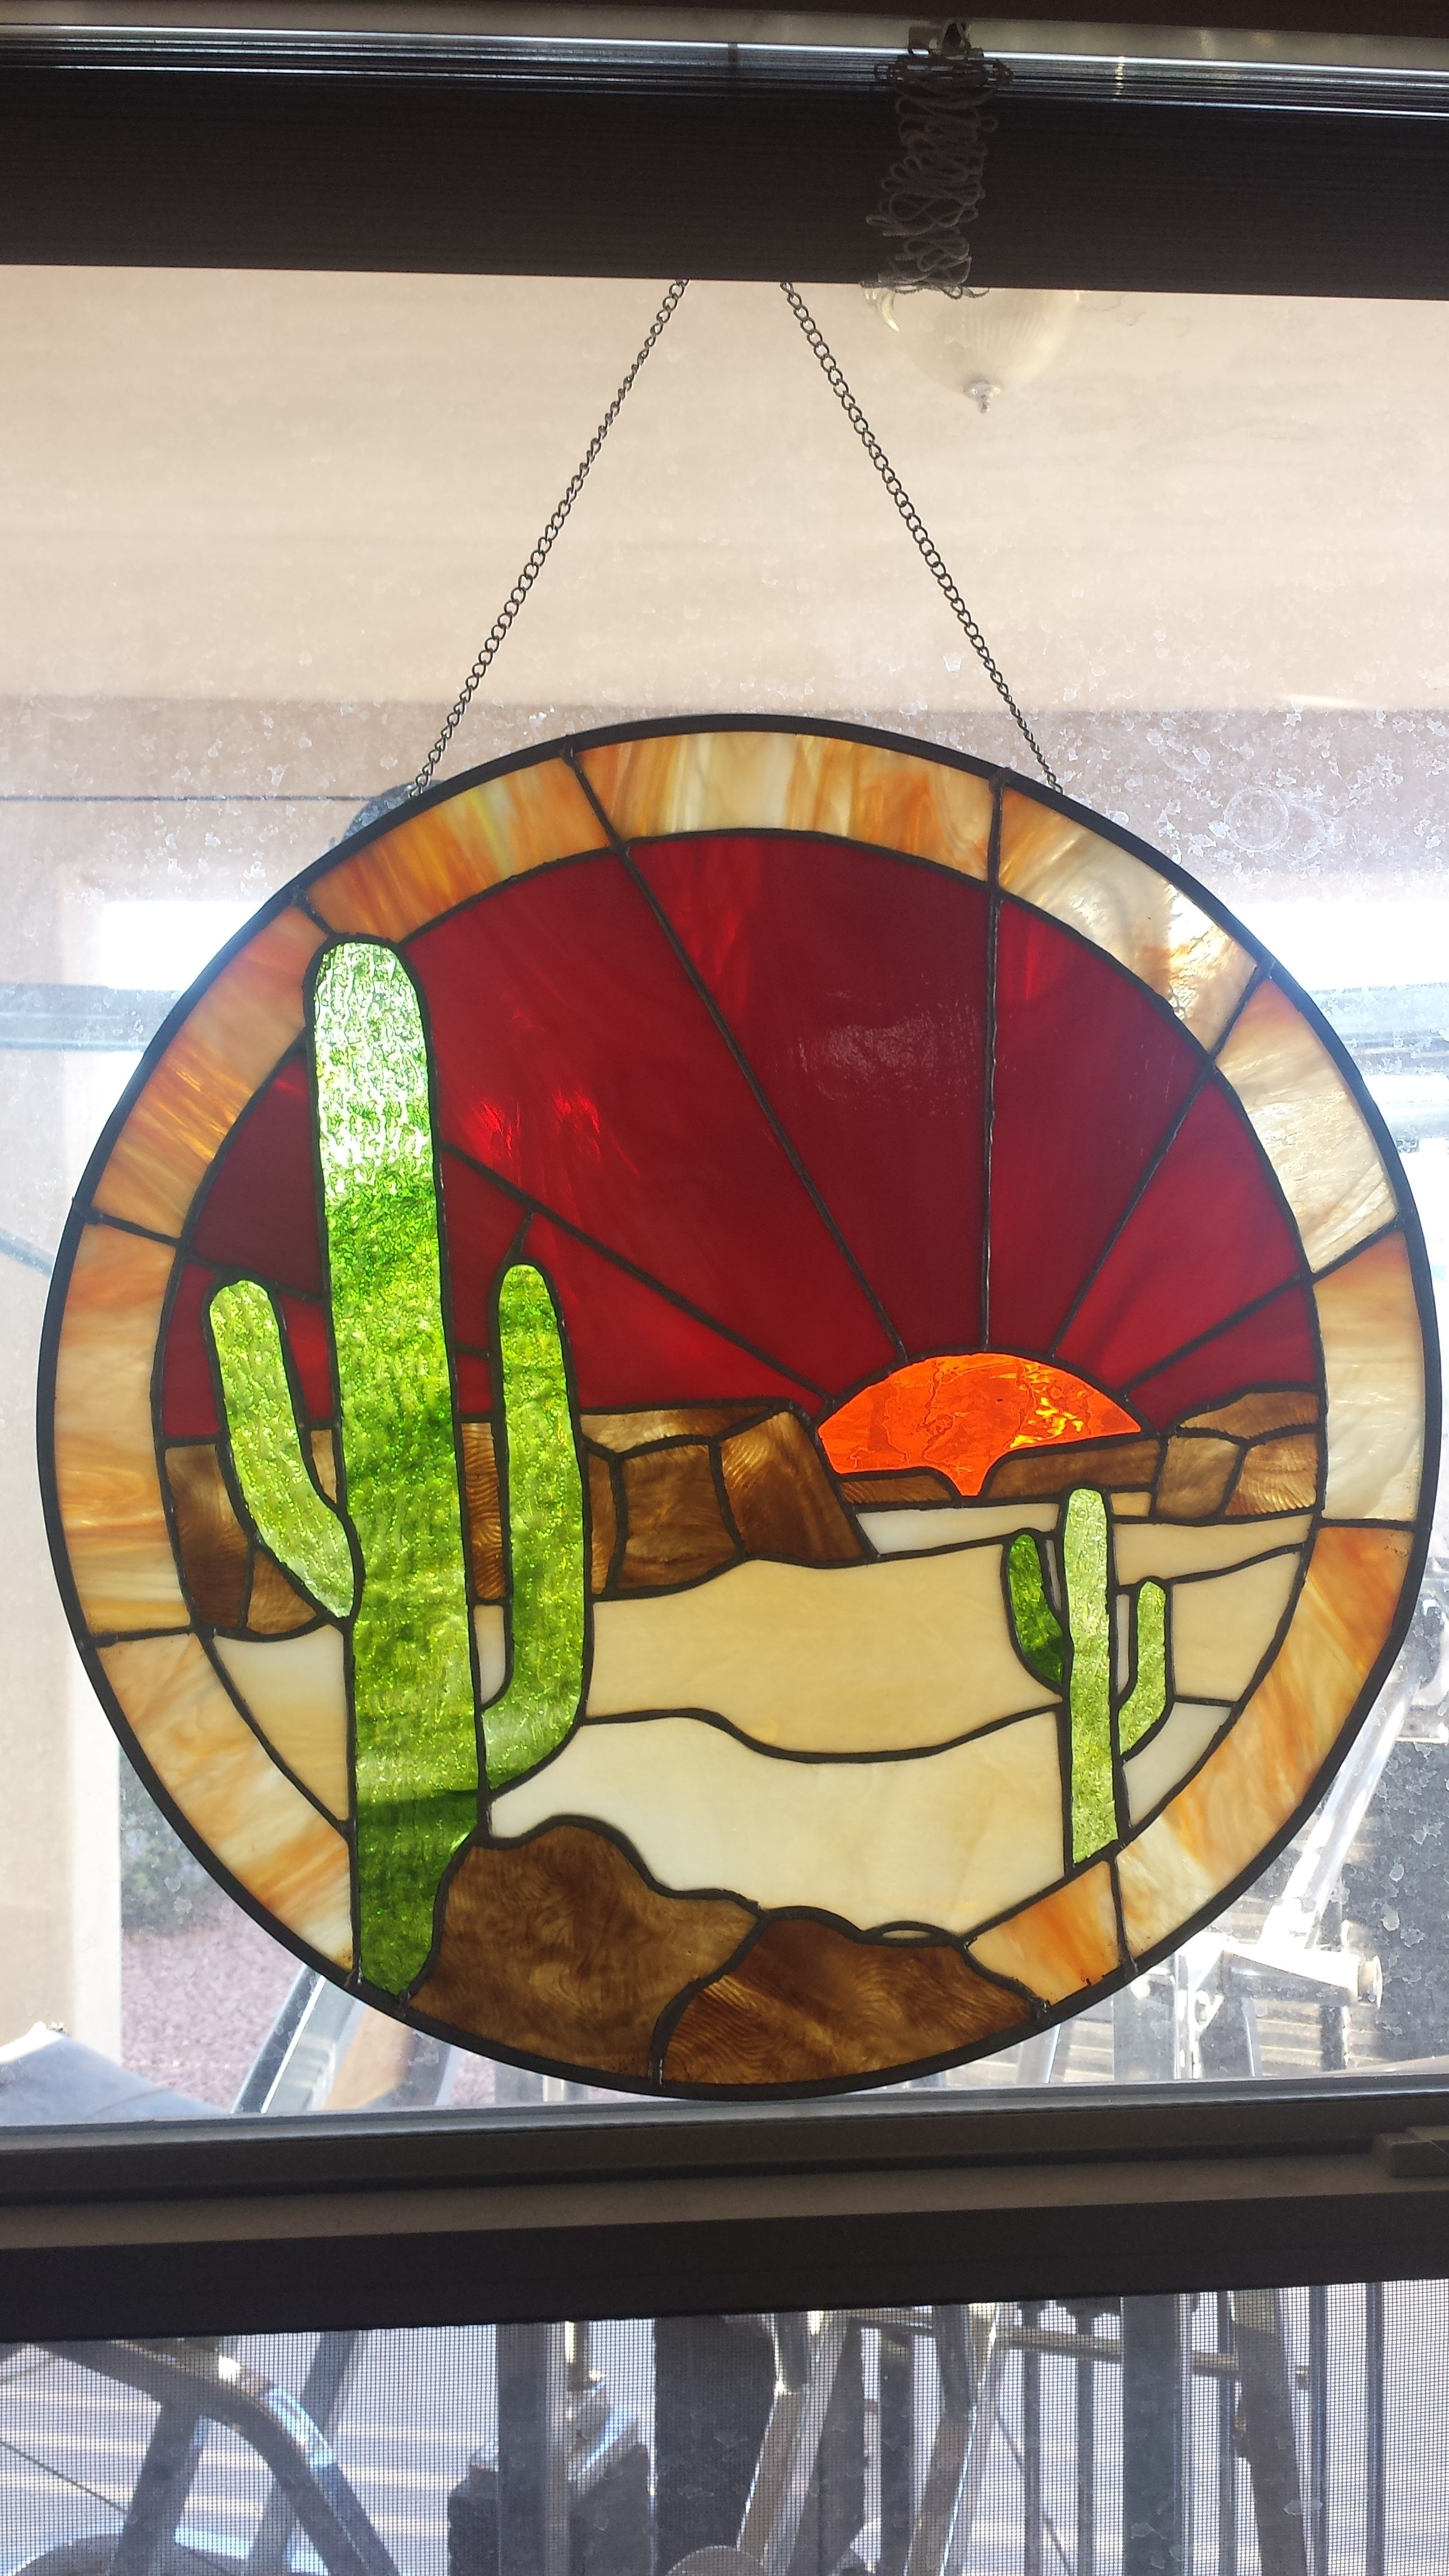 Grams Desert | Stained glass designs, Stained glass, Glass ...